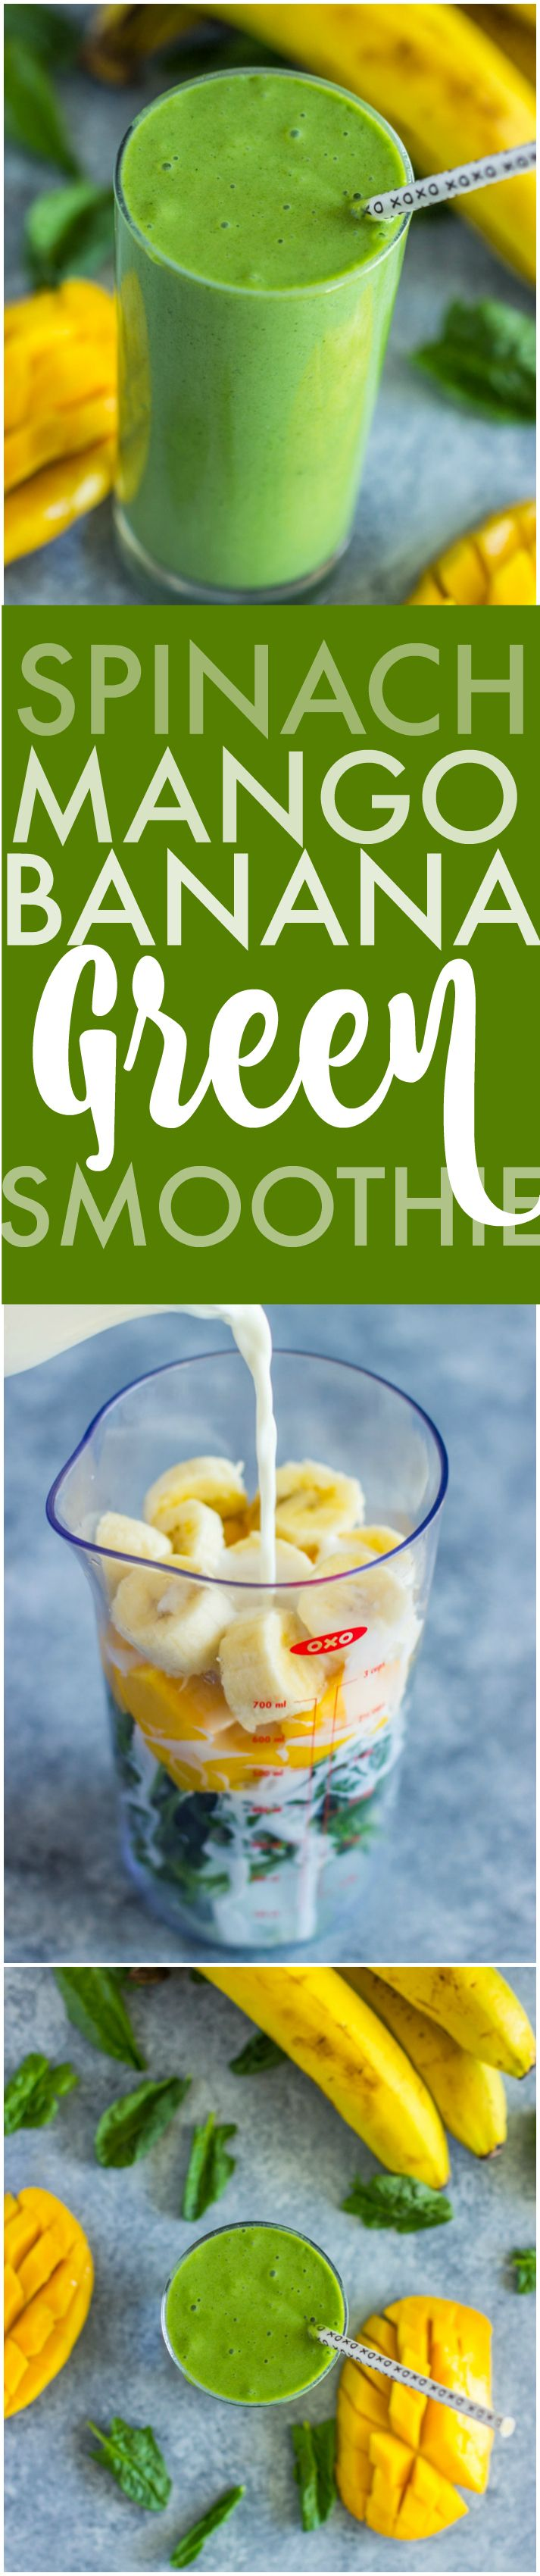 4 Ingredient Spinach Mango Banana Green Smoothie | Gimme Delicious